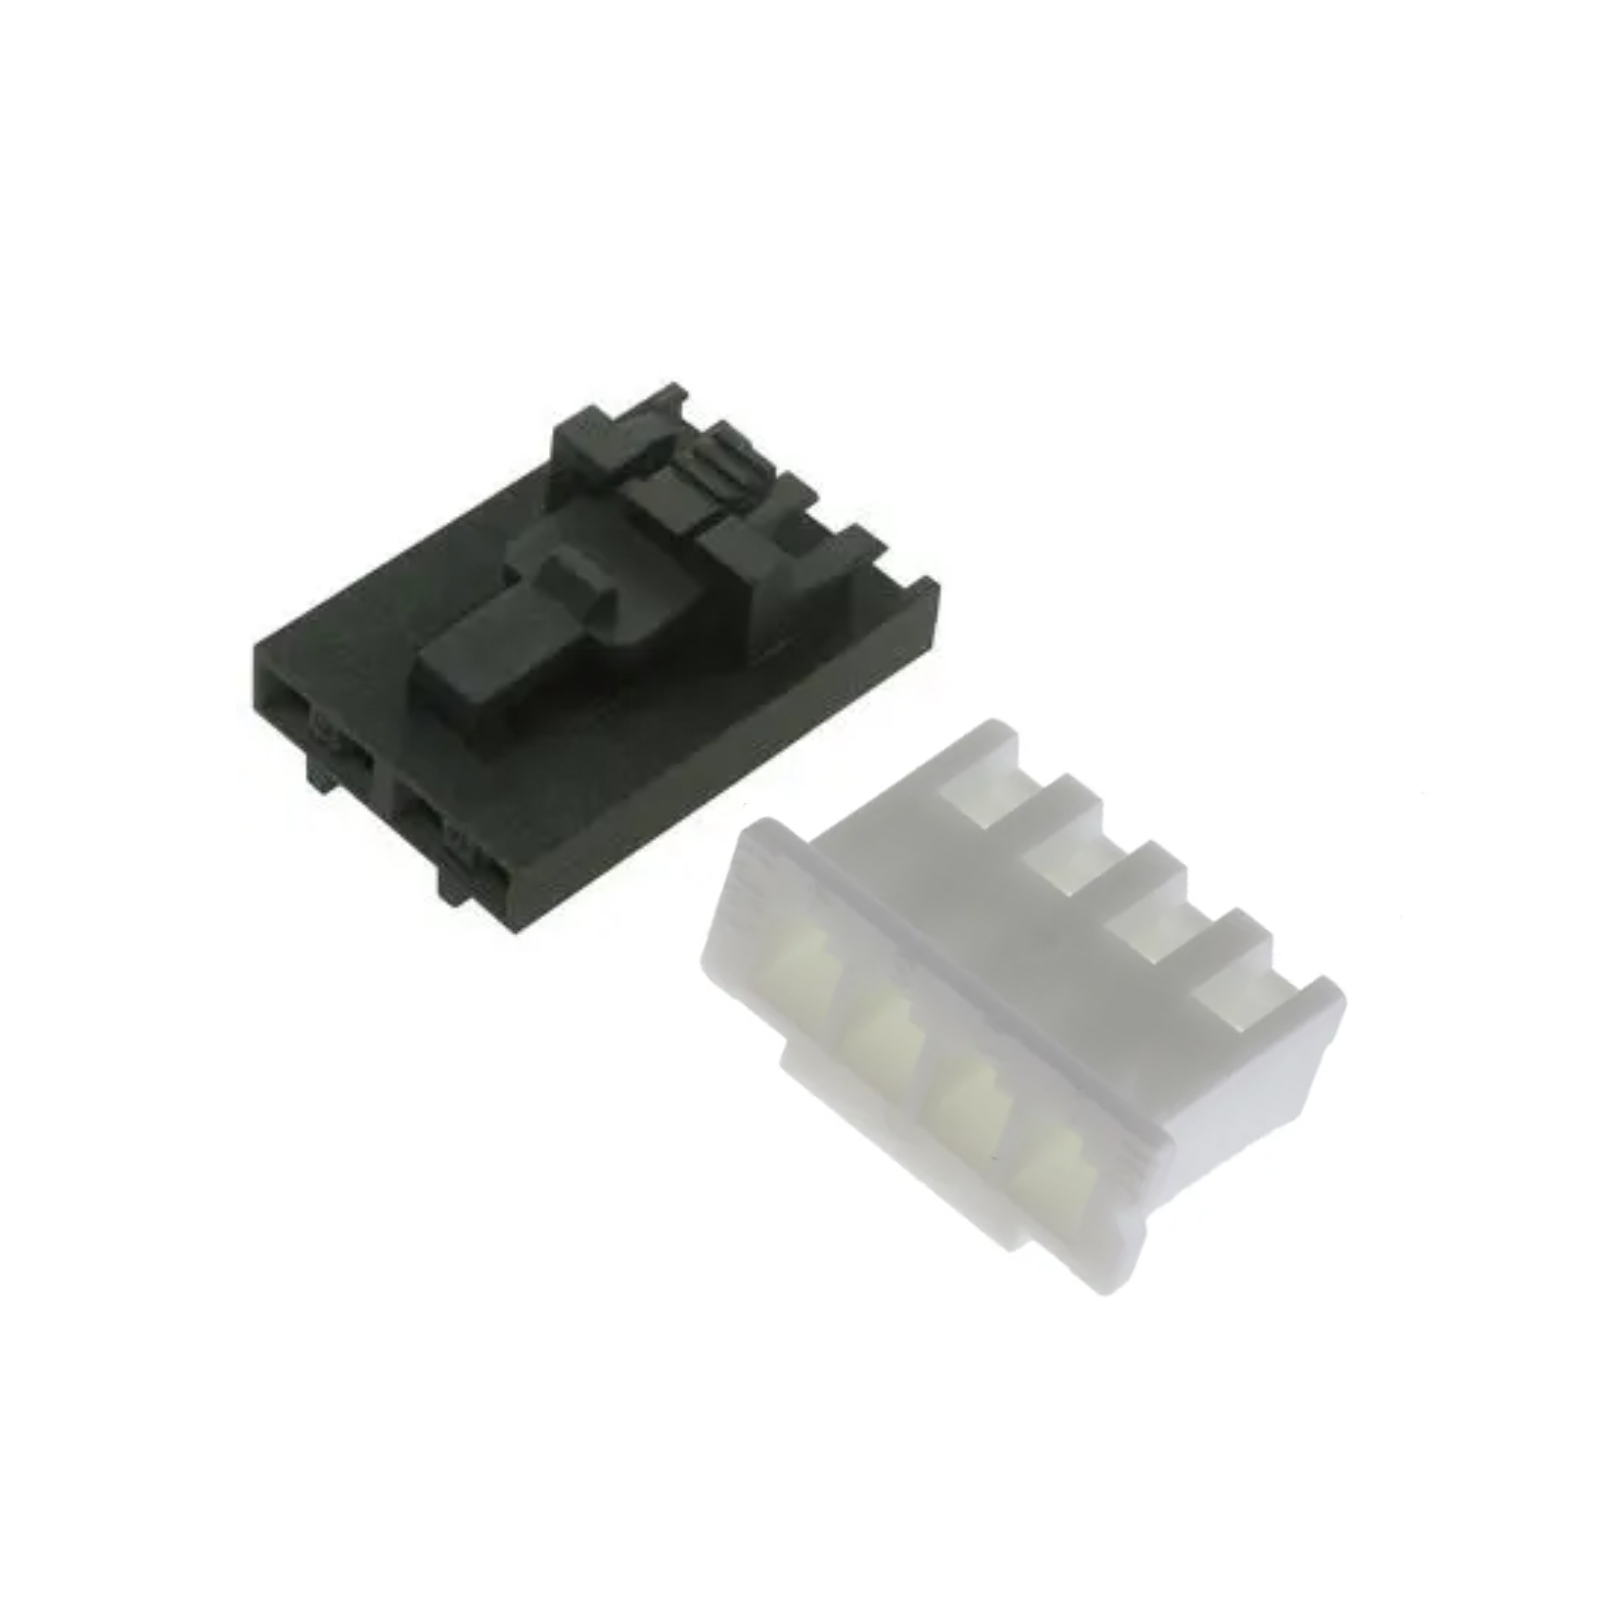 molex dupont jst 4 pin connector for 3D printers stepper motors